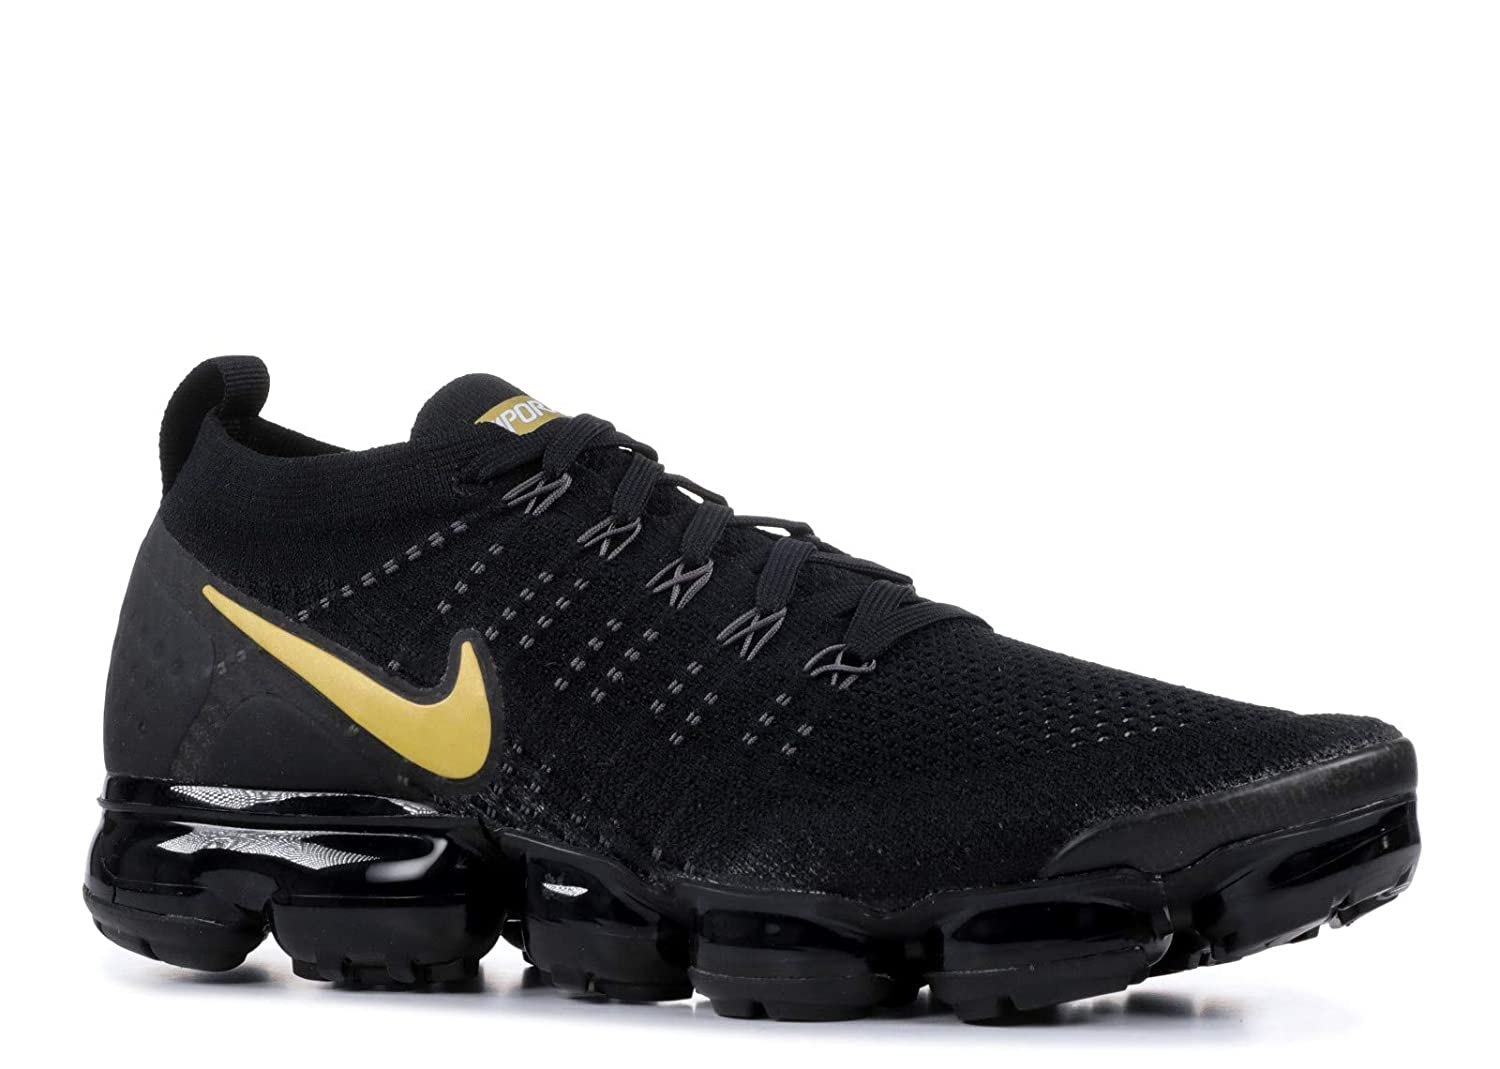 outlet store 0e79c 3b0d7 Nike Women's Air Max Vapormax Flyknit 2 Black/Metallic Gold-Metallic  Platinum 942843-012